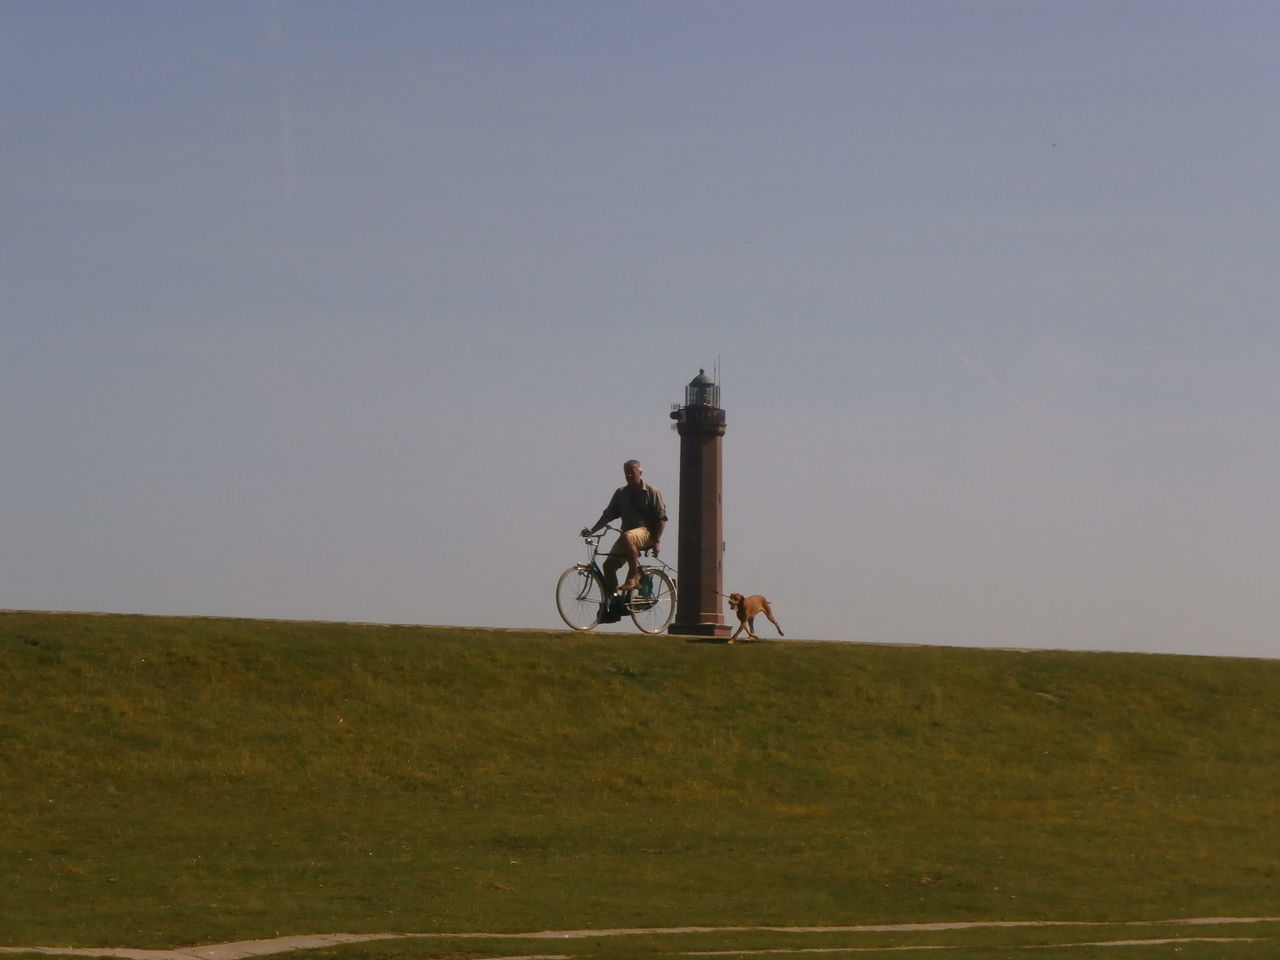 Biking man with dog on the island of Norderney, Germany. Bycicle Distant Germany Lighthouse Norderney One Animal One Person Outdoors Sky